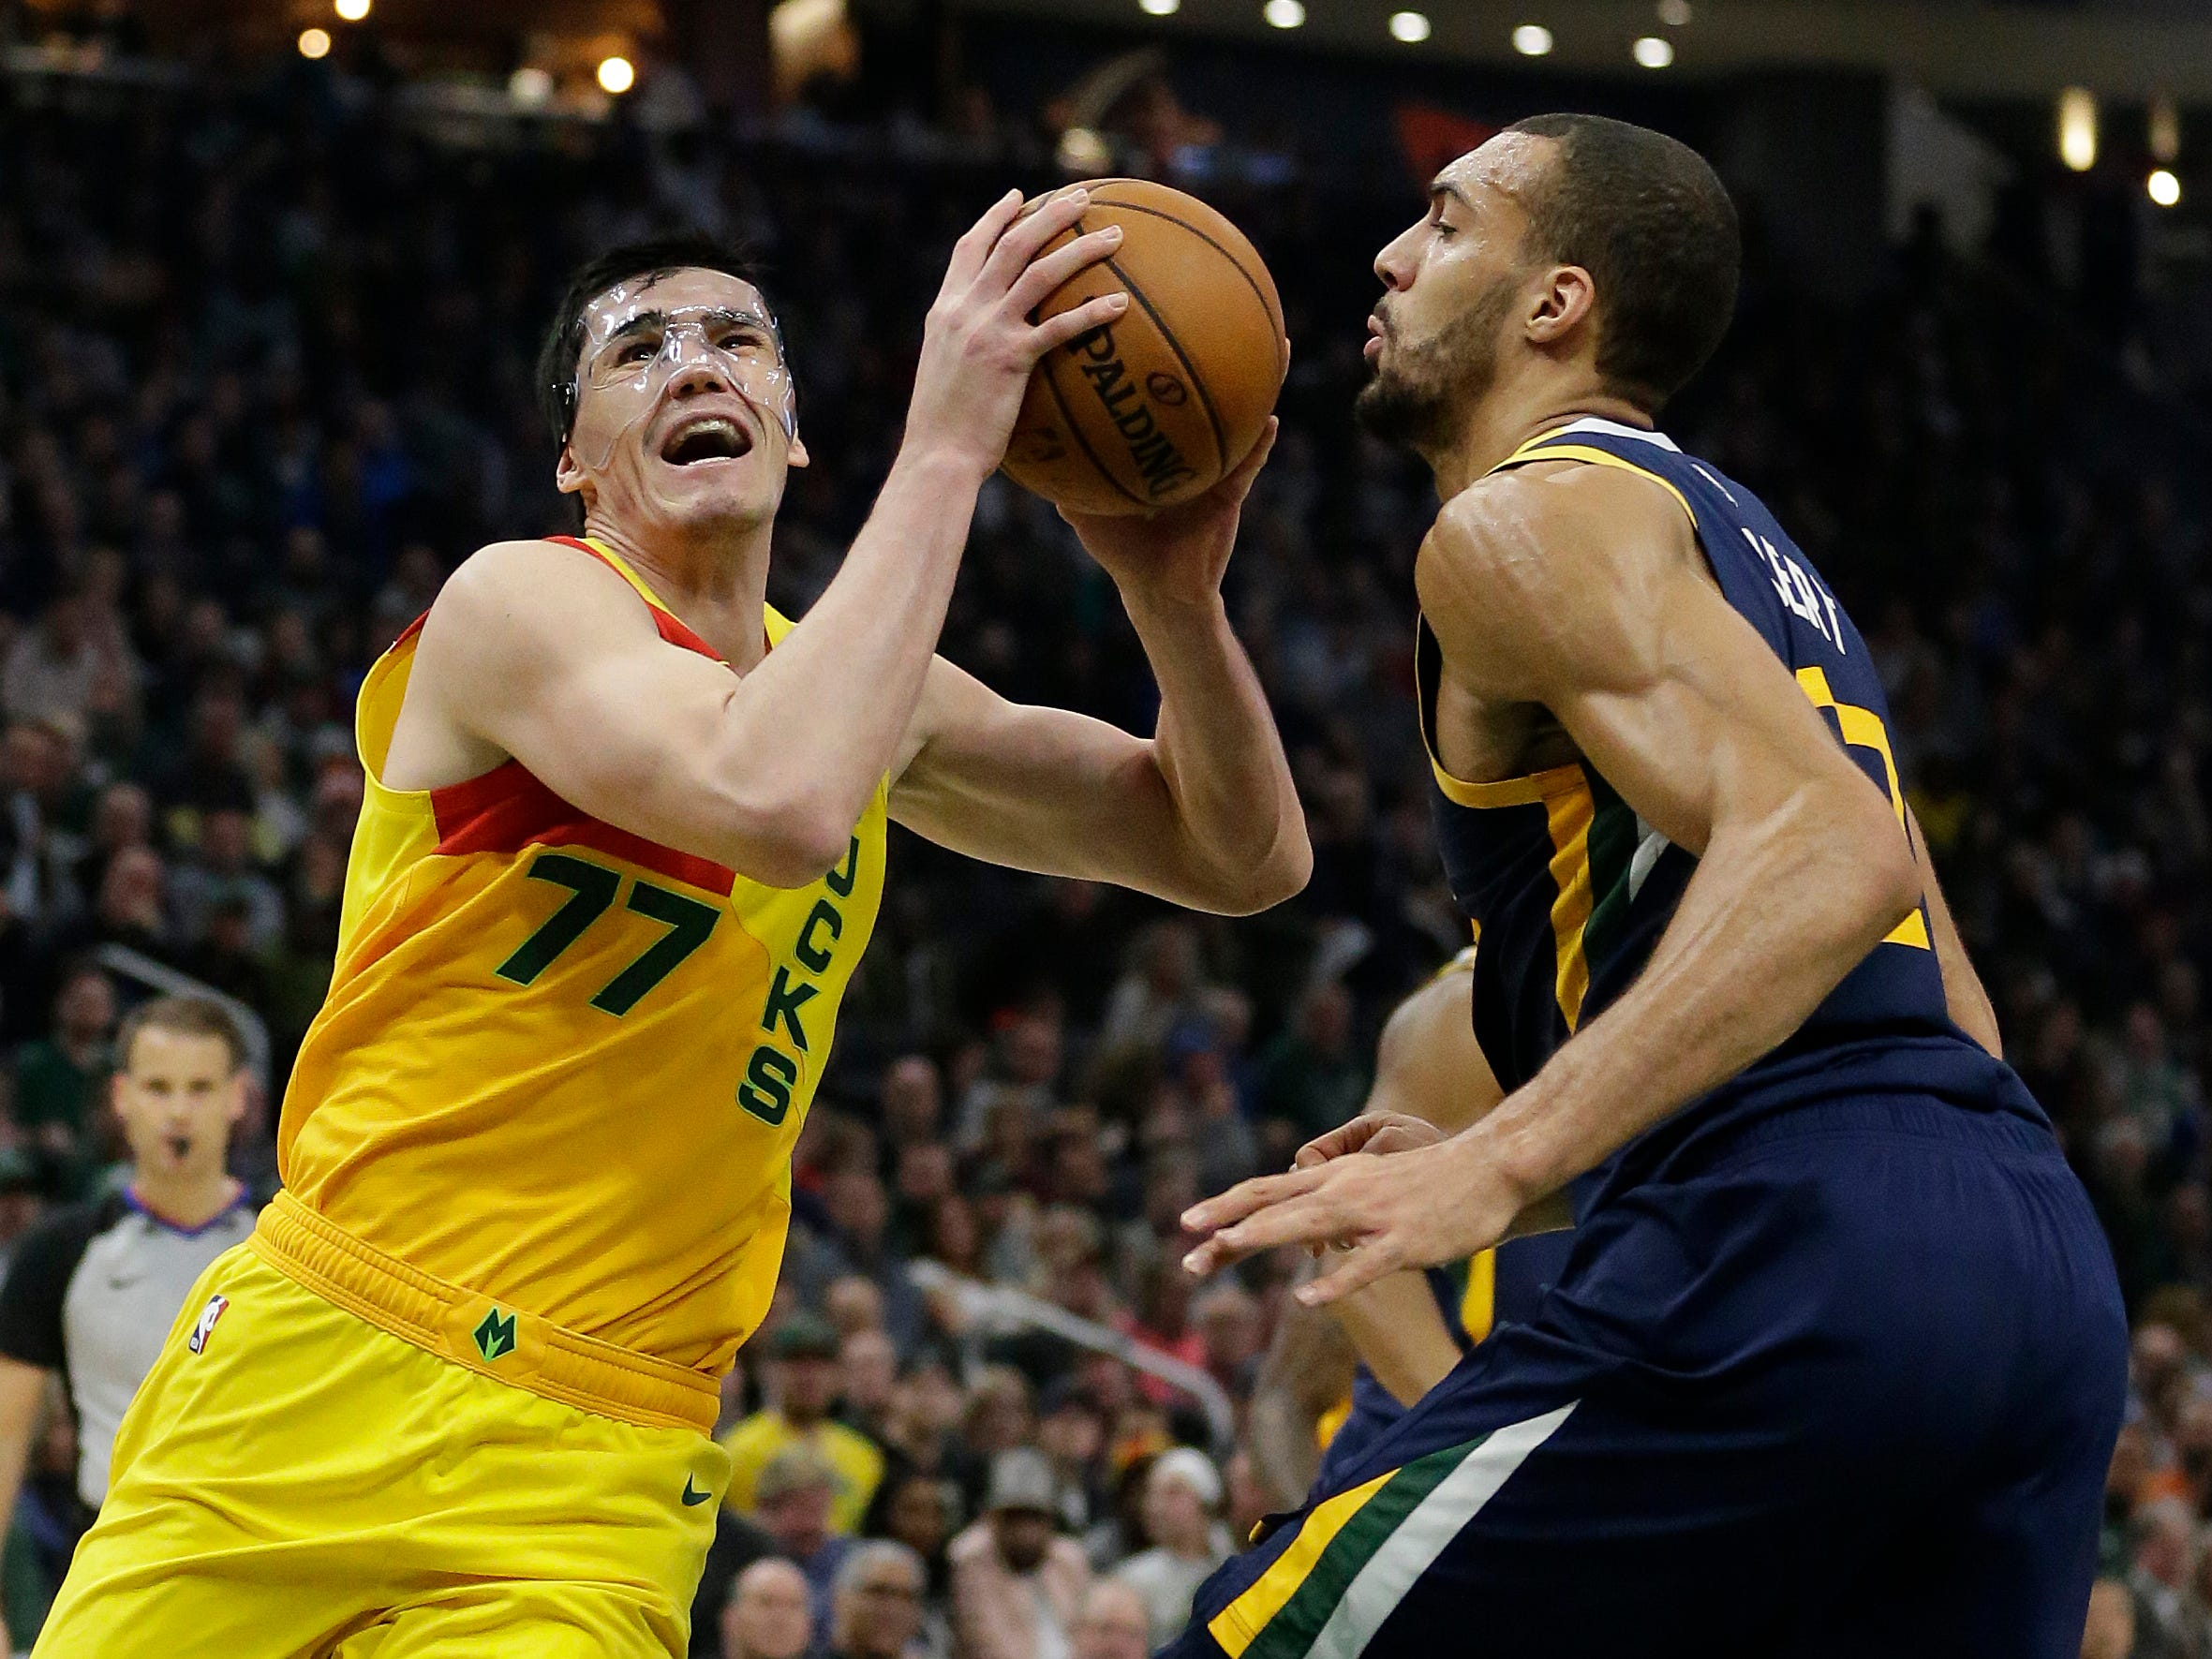 Masked-man Ersan Ilyasova of the Bucks drives against the Jazz's Rudy Gobert during the first half Monday.